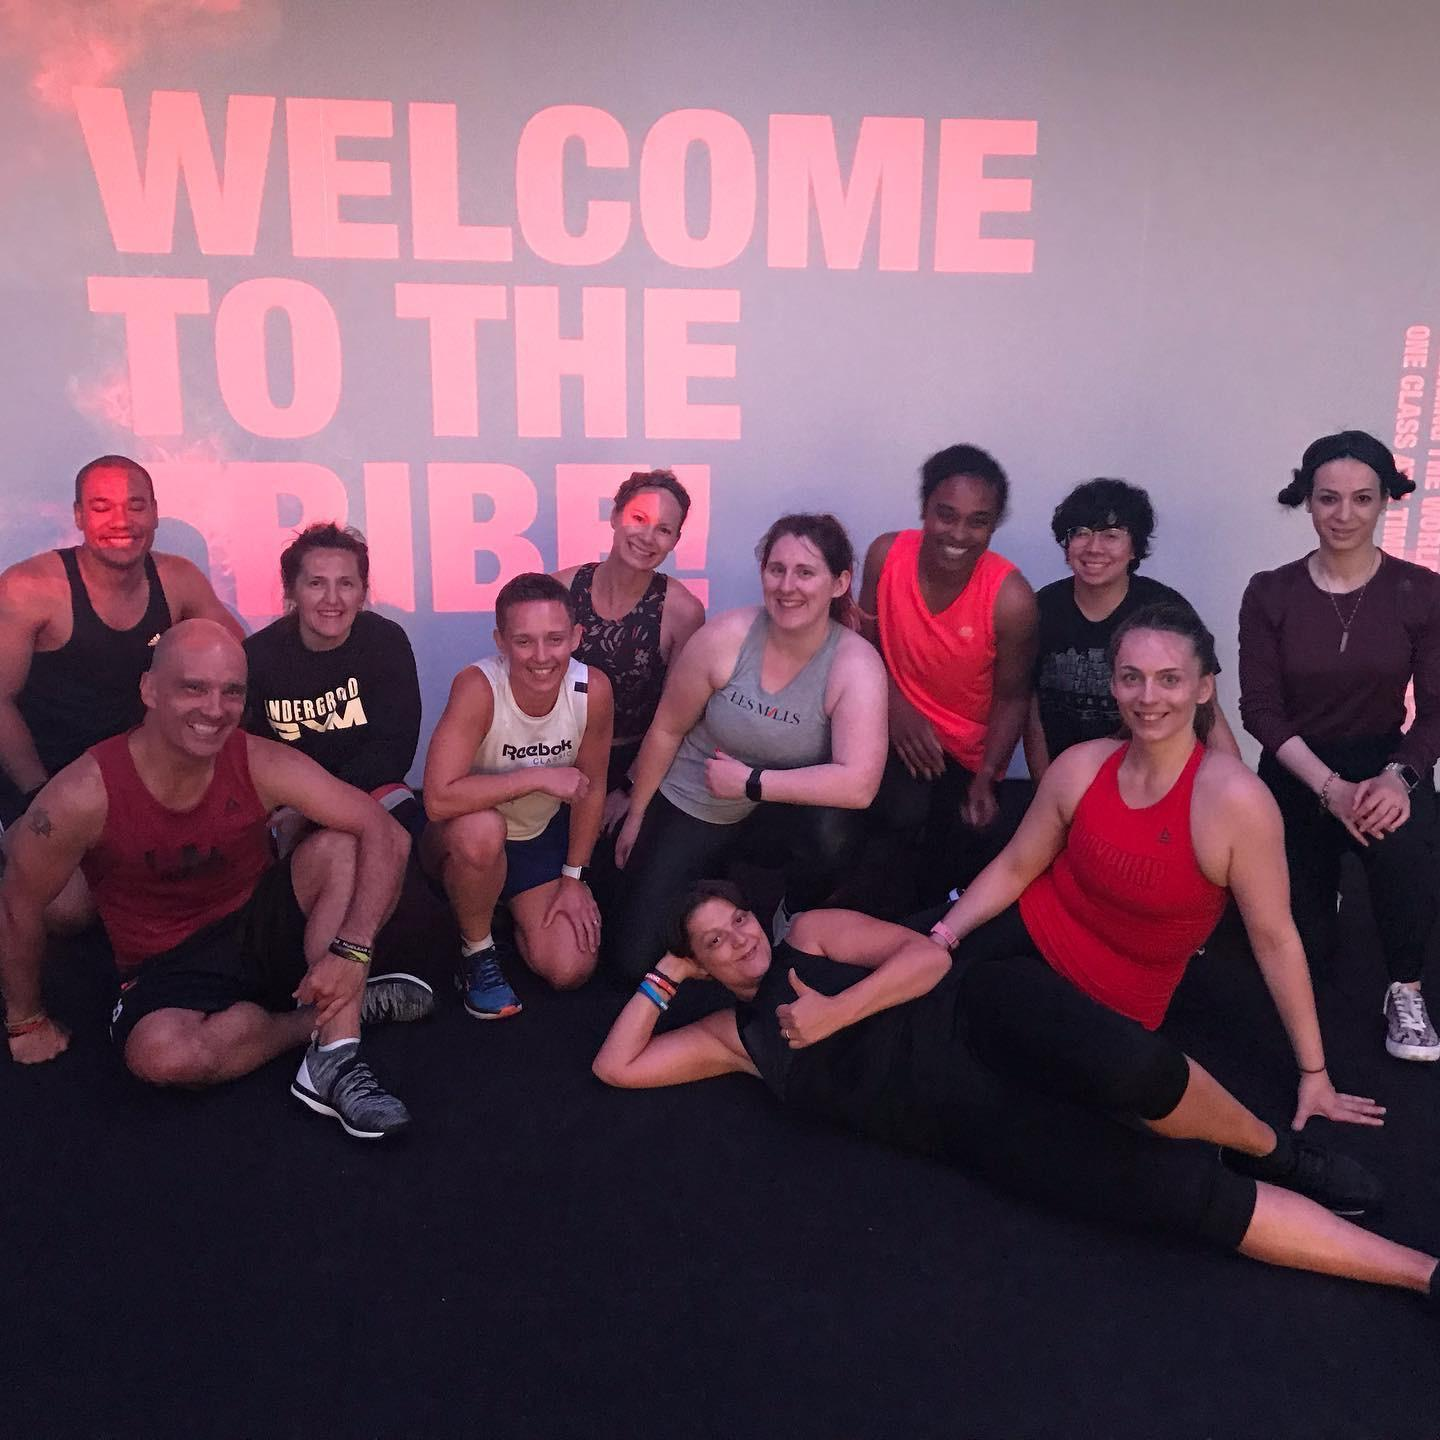 Les Mills Bodypump Instructor training